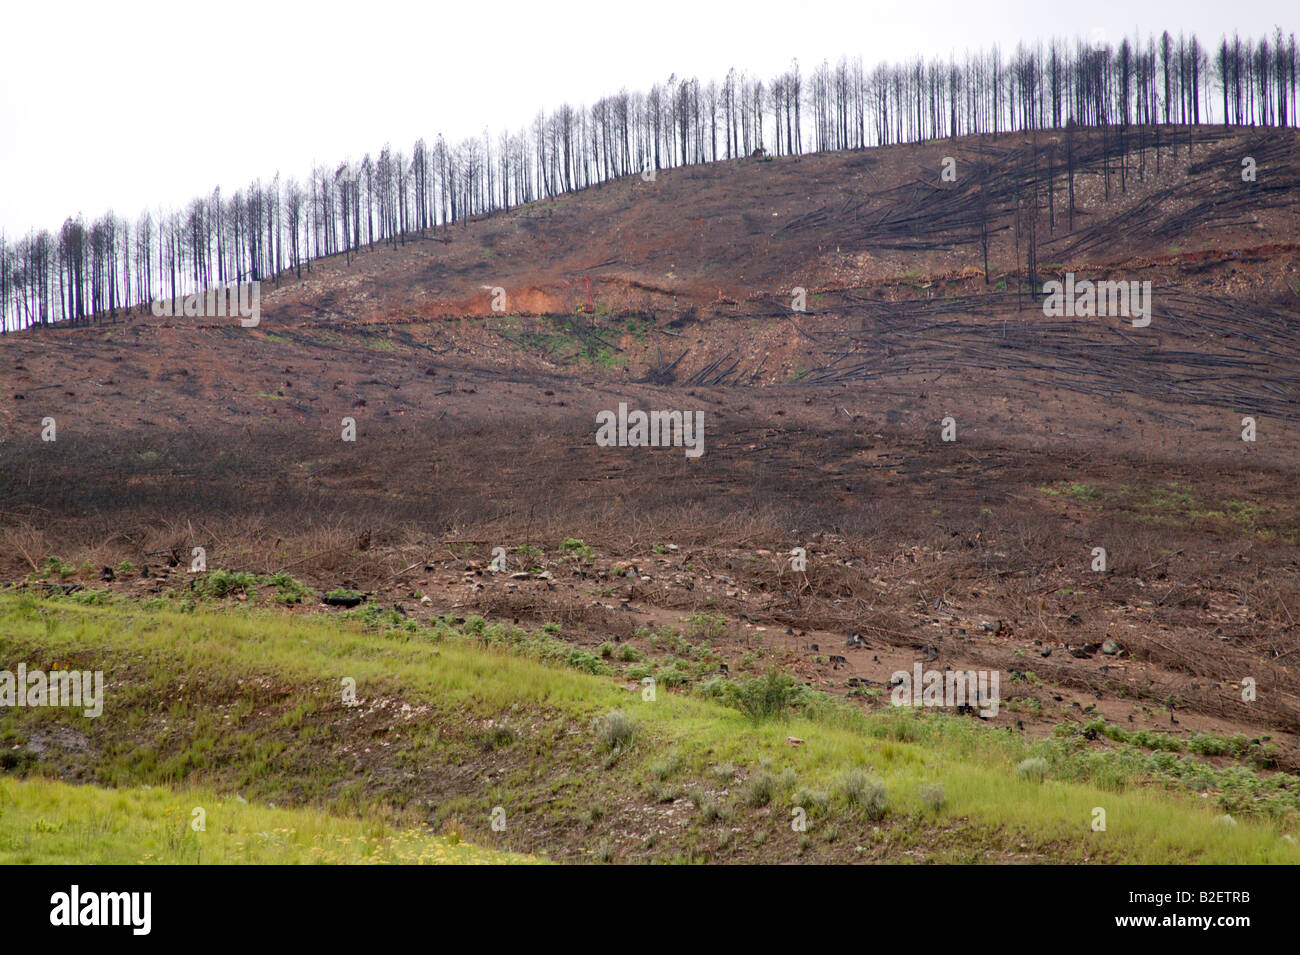 A hillside with pine trees burnt during runaway forest fires - Stock Image